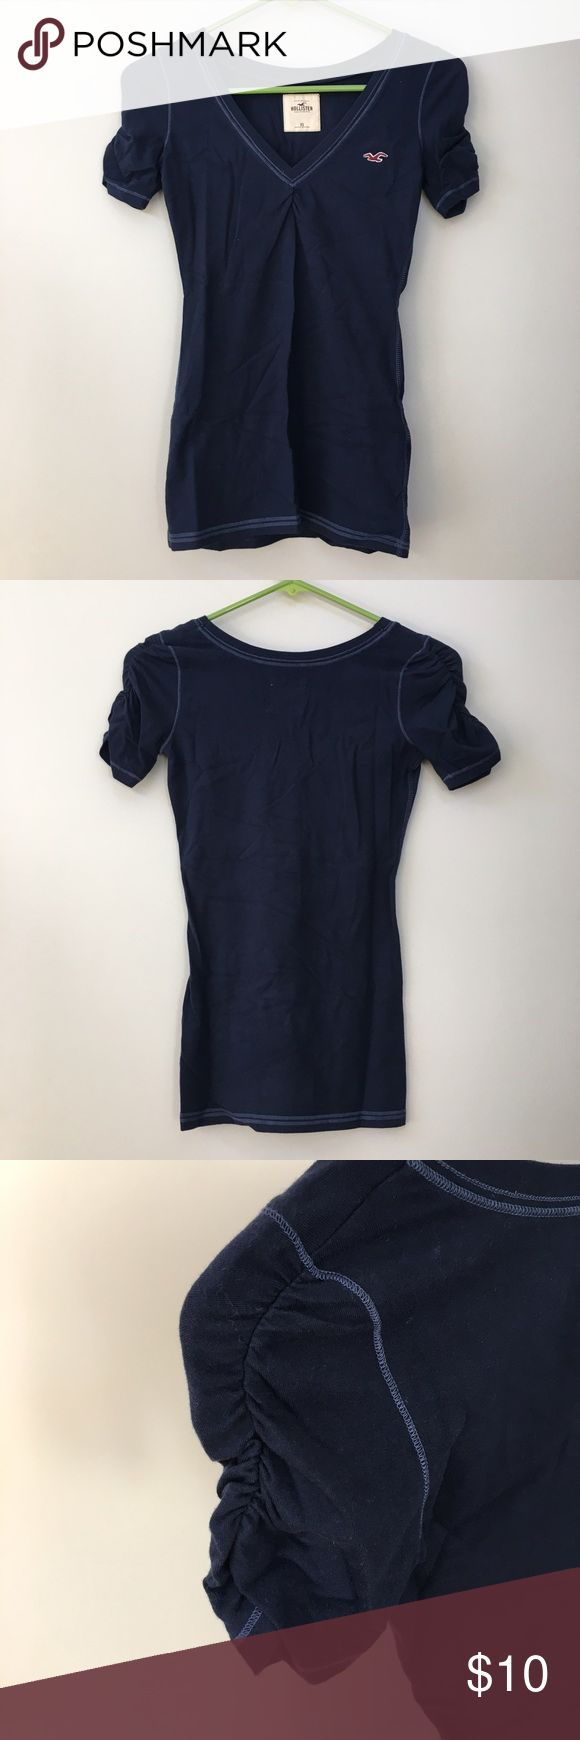 Hollister HCO Navy Short Sleeve Top Brand: Hollister Size: XS Condition: 100% New without tag Closet Clearance! For all HCO/A&F items, I can offer bundle discount! Comment below :) Hollister Tops Tank Tops